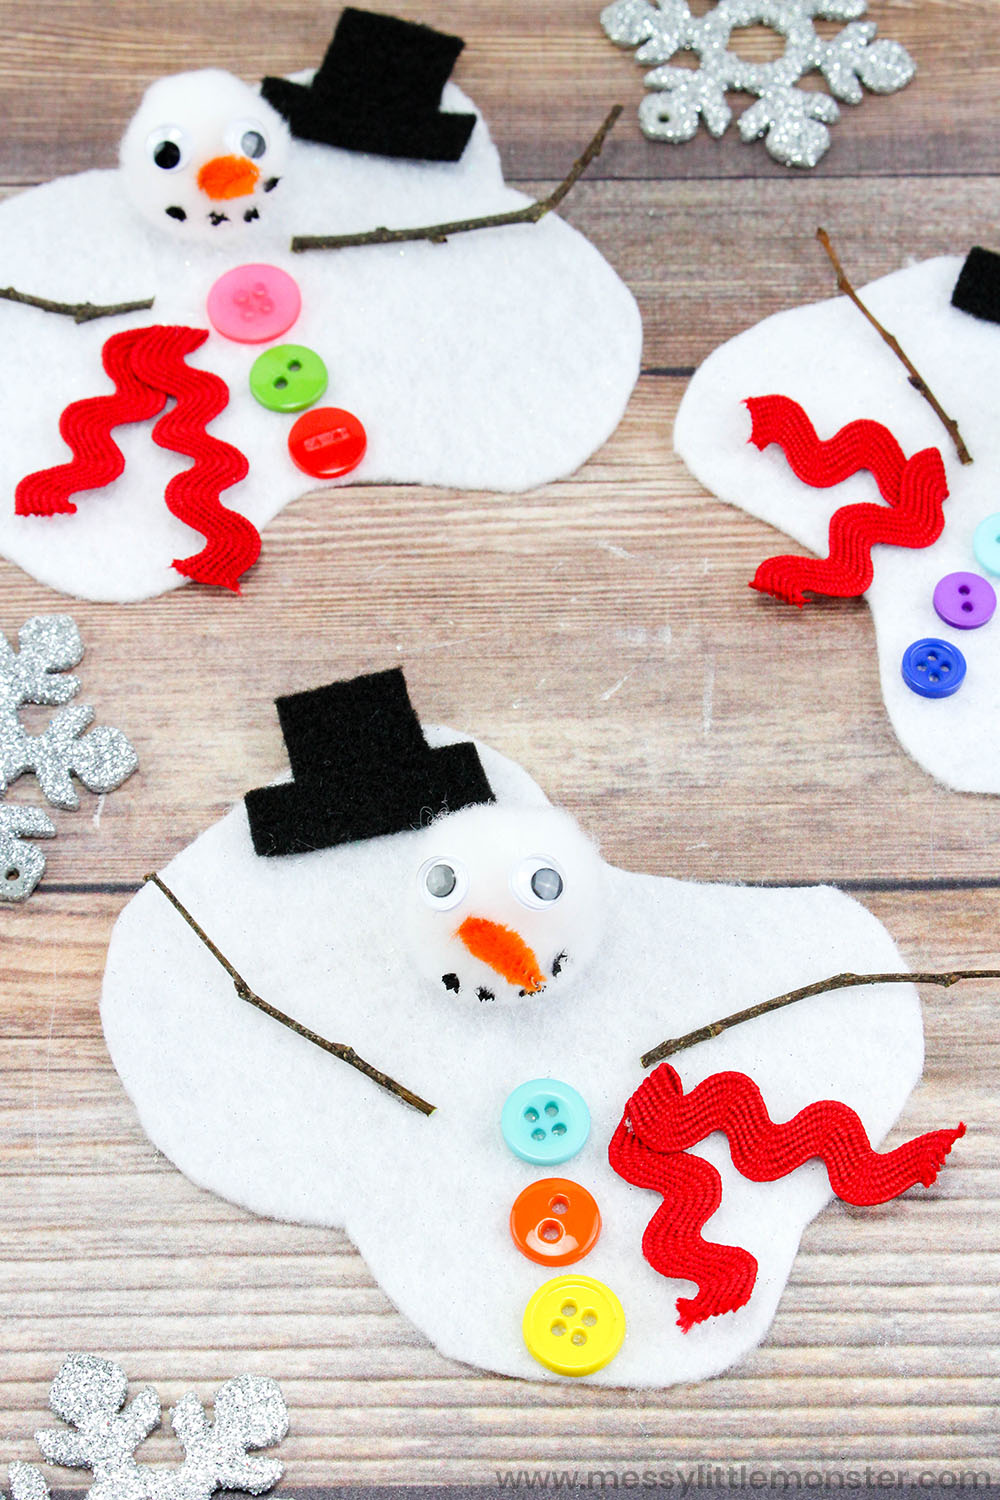 Melted snowman craft for kids